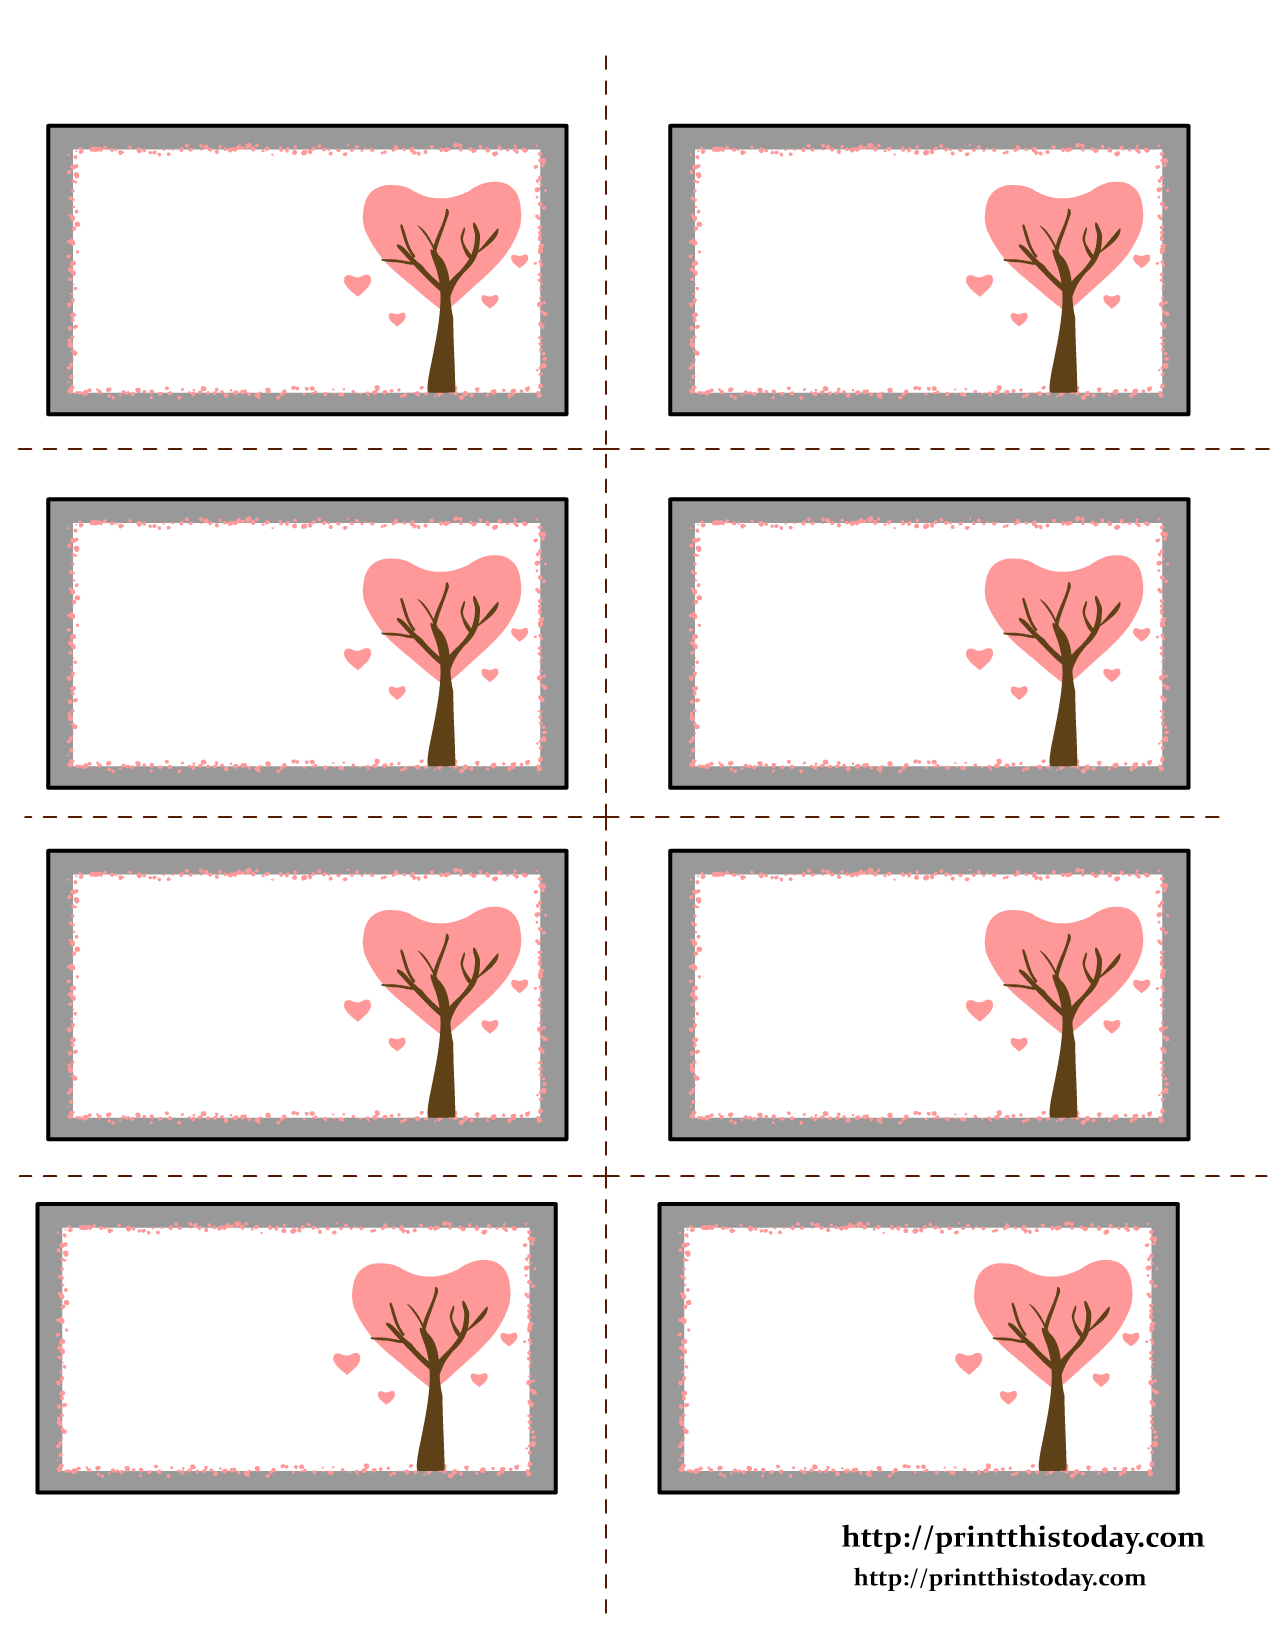 Etiquettes Imprimables | Valentine Labels With Love Birds On Tree - Free Printable Heart Labels